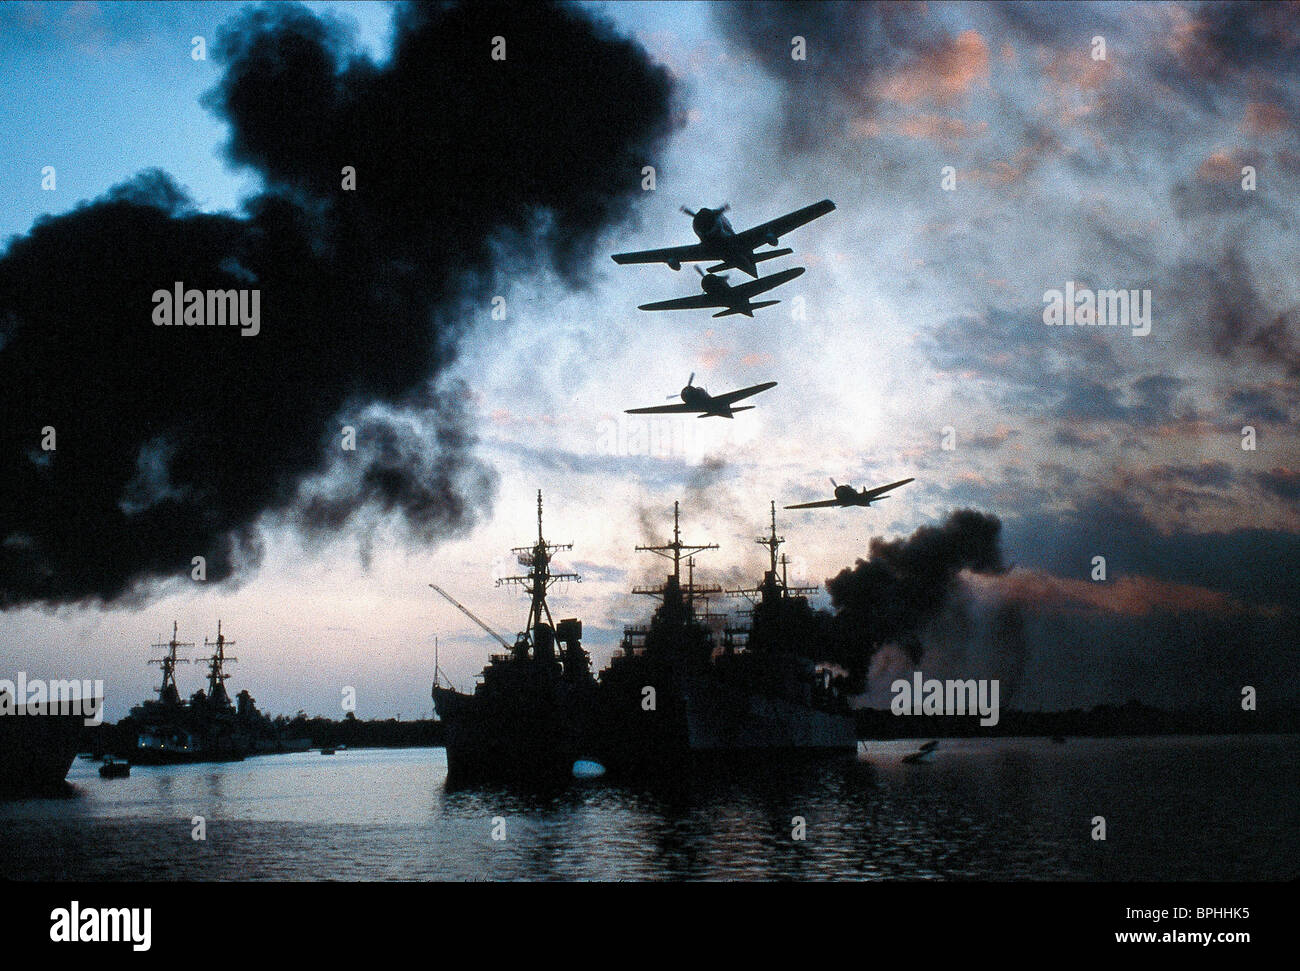 Image result for royalty free images of Pearl Harbor